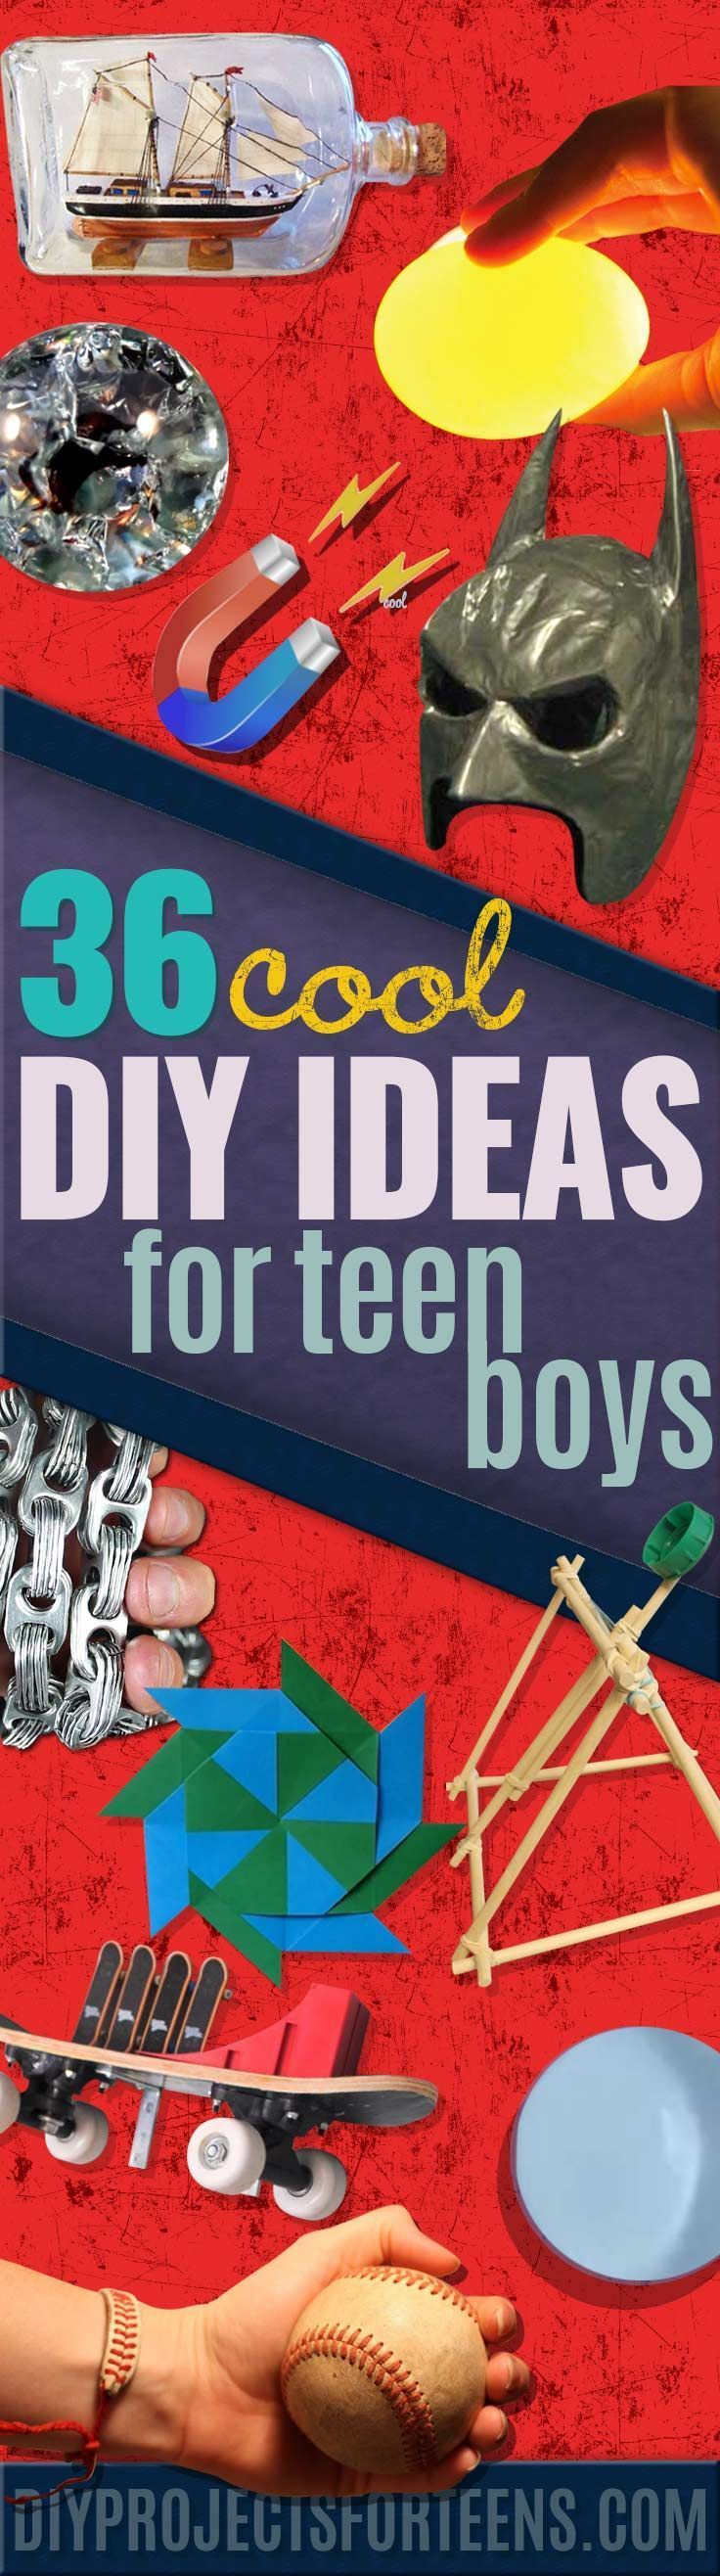 112 best Gift Ideas for Teen & Tween Boys images on Pinterest